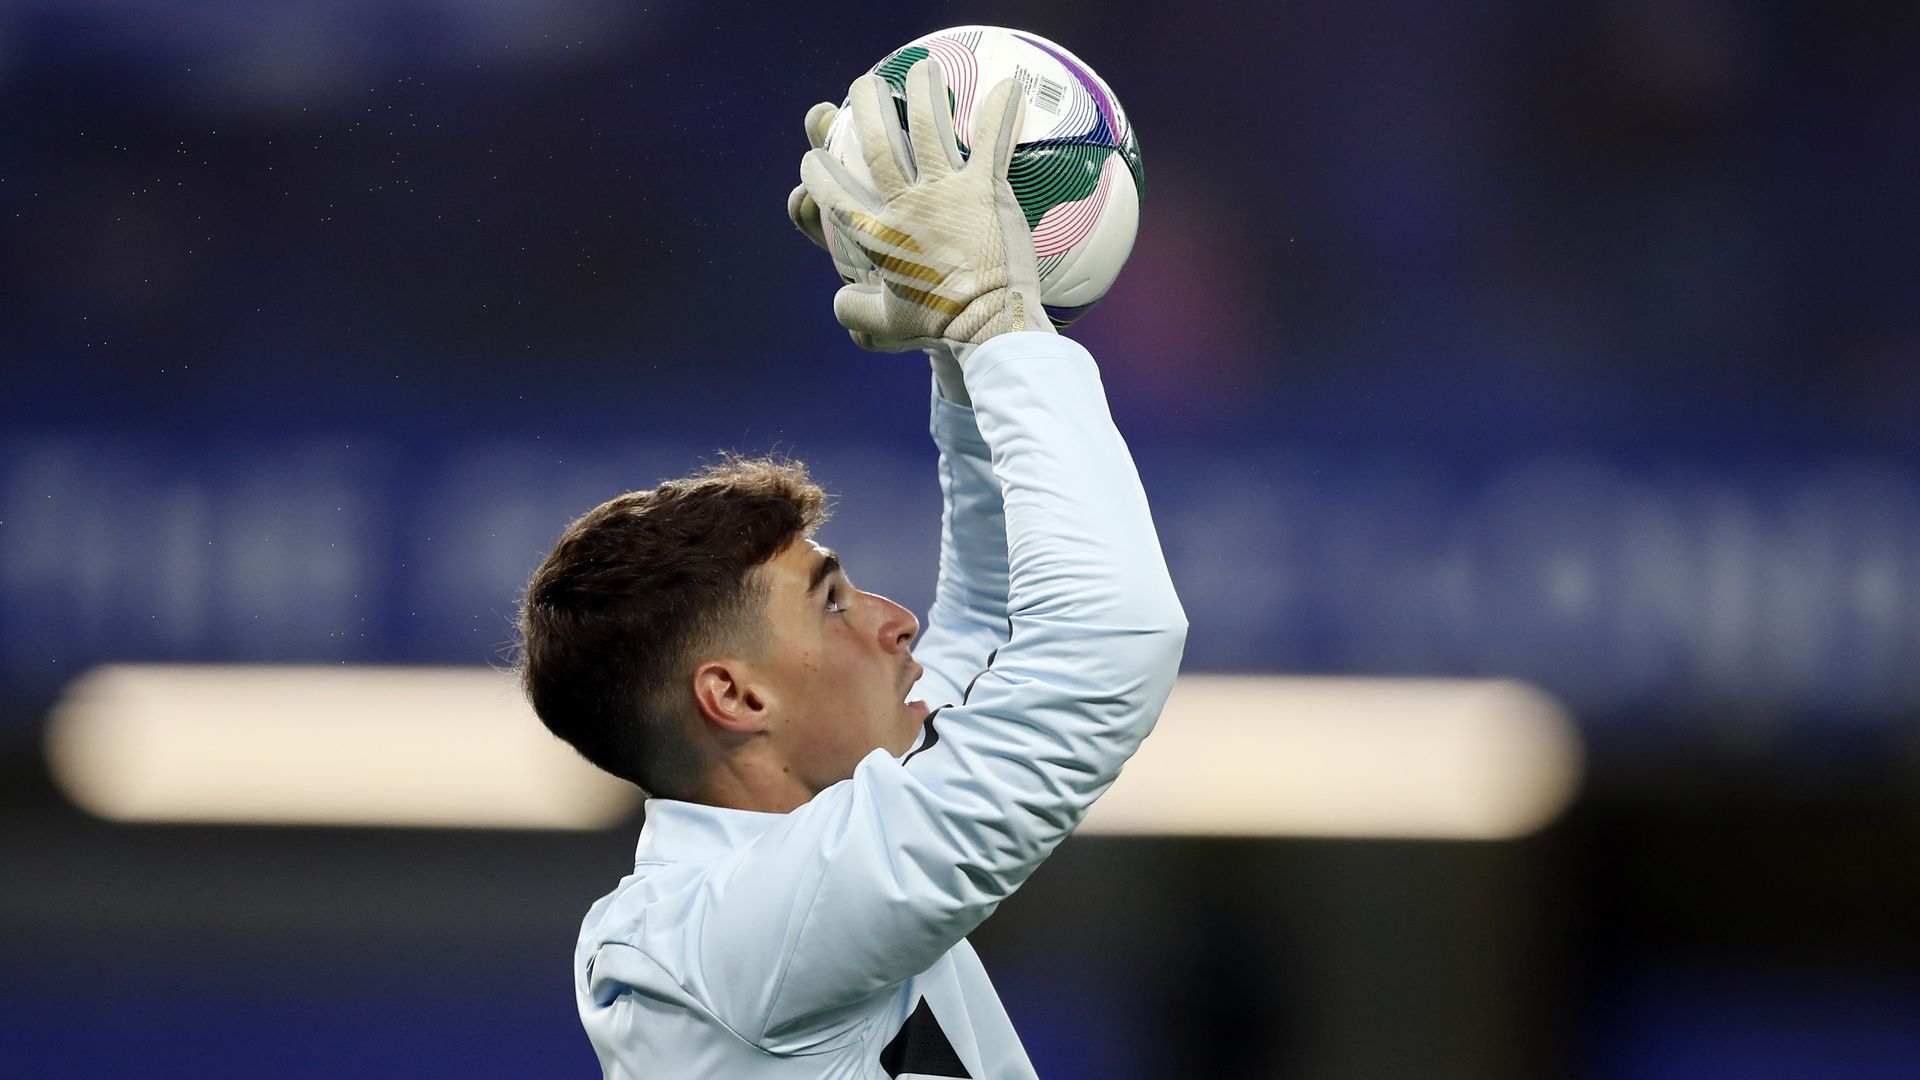 Fresh start for Kepa under Tuchel